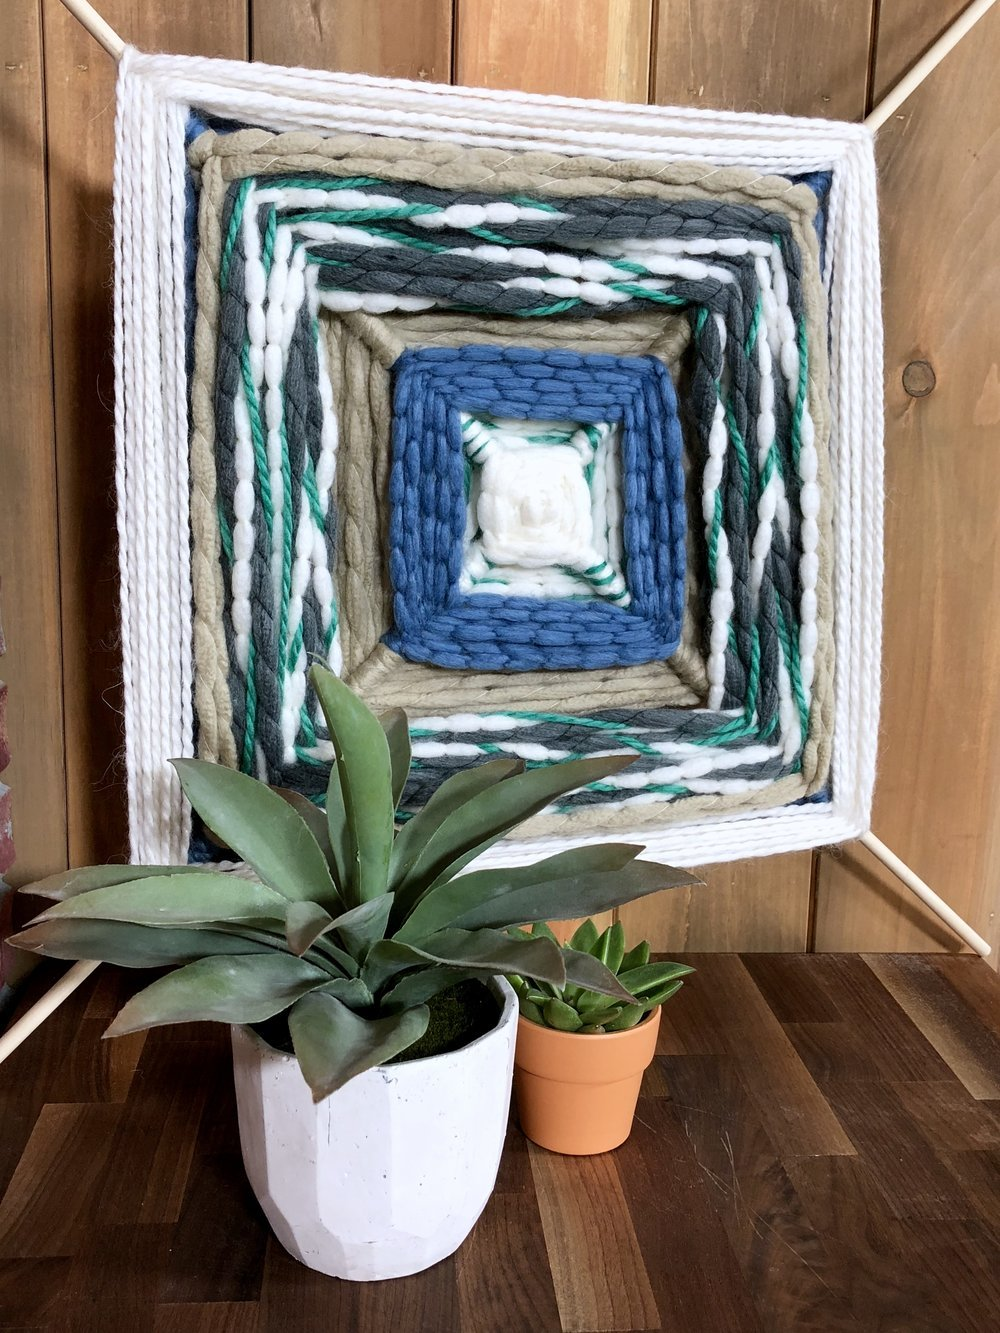 Throwback Summer Camp Crafts for Adults - We were inspired by old camp patches and got crafty with felt, made a larger than life God's eye with chunky yarn and turned a loopers finger weave into a basket up do!  #summerdiy #felt #chunkyyarn #campcrafts #summer #summerdiycrafts #summercampactivities #feltart #scenicart #camping #nature #throwback #godseye #loopers #homedecor #homedecorating #throwbackcrafts